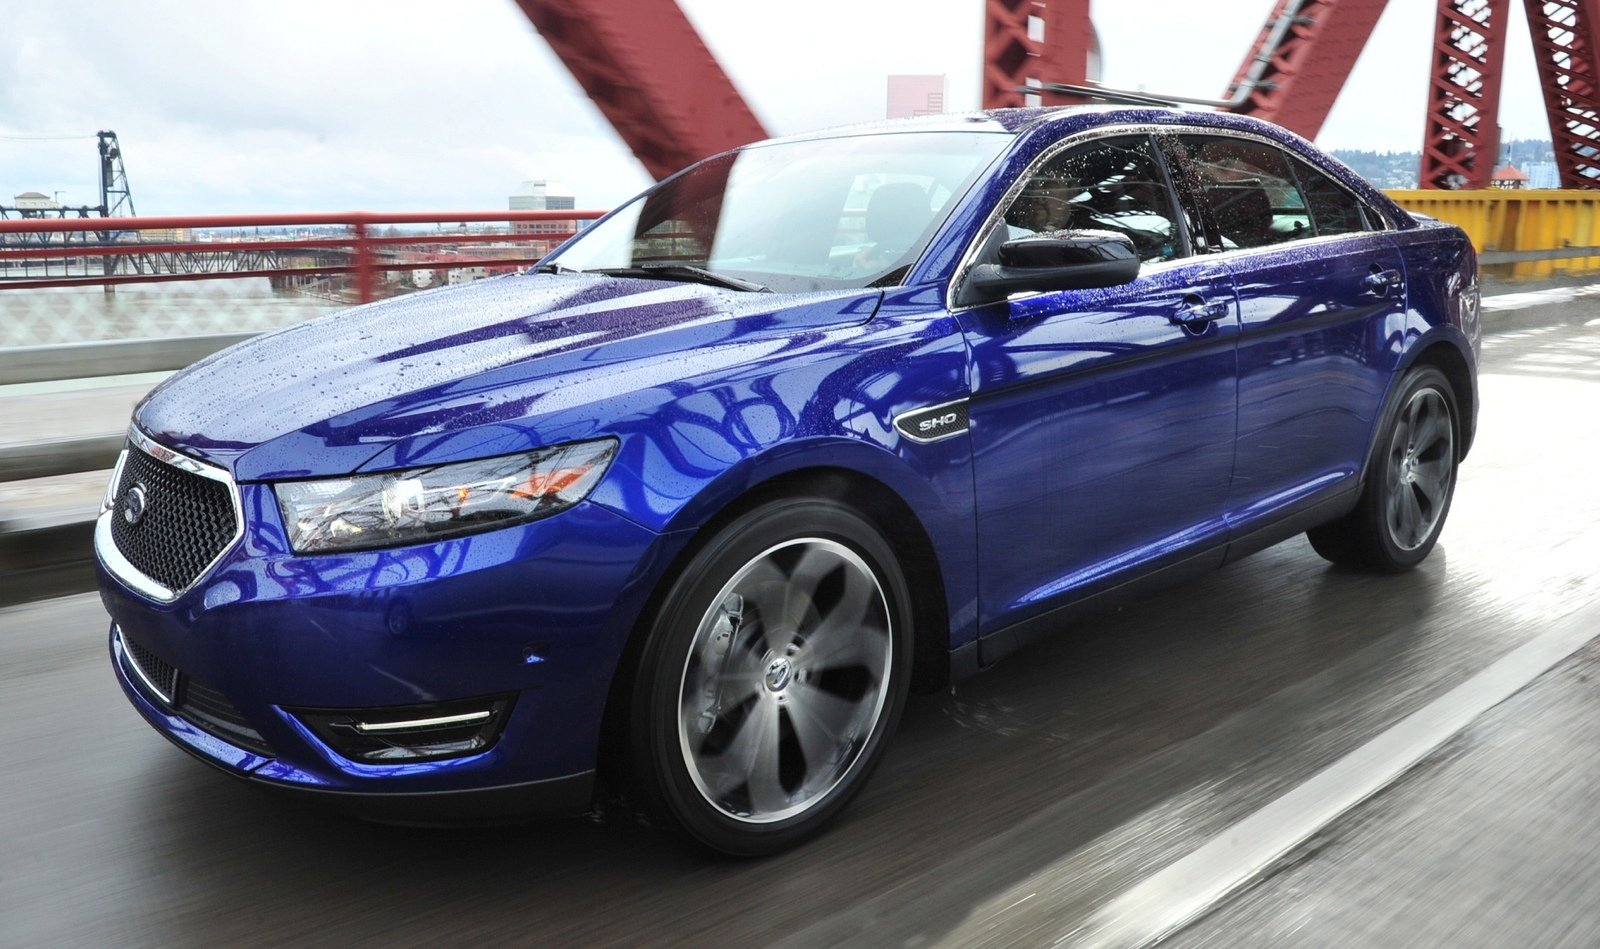 2014 ford taurus sho picture 524256 car review top speed. Black Bedroom Furniture Sets. Home Design Ideas